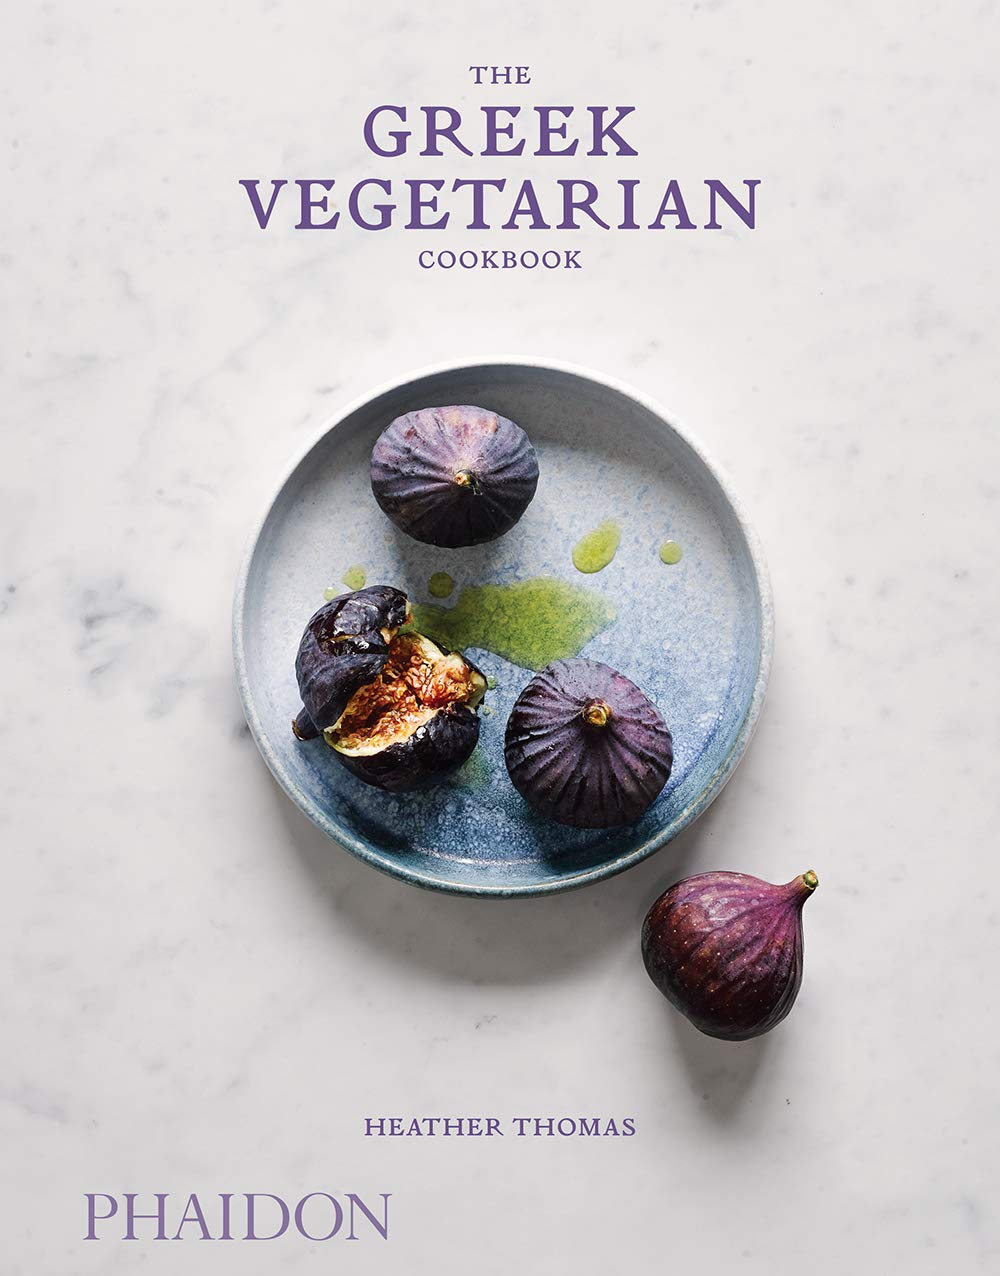 The Greek Vegetarian Cookbook thumbnail